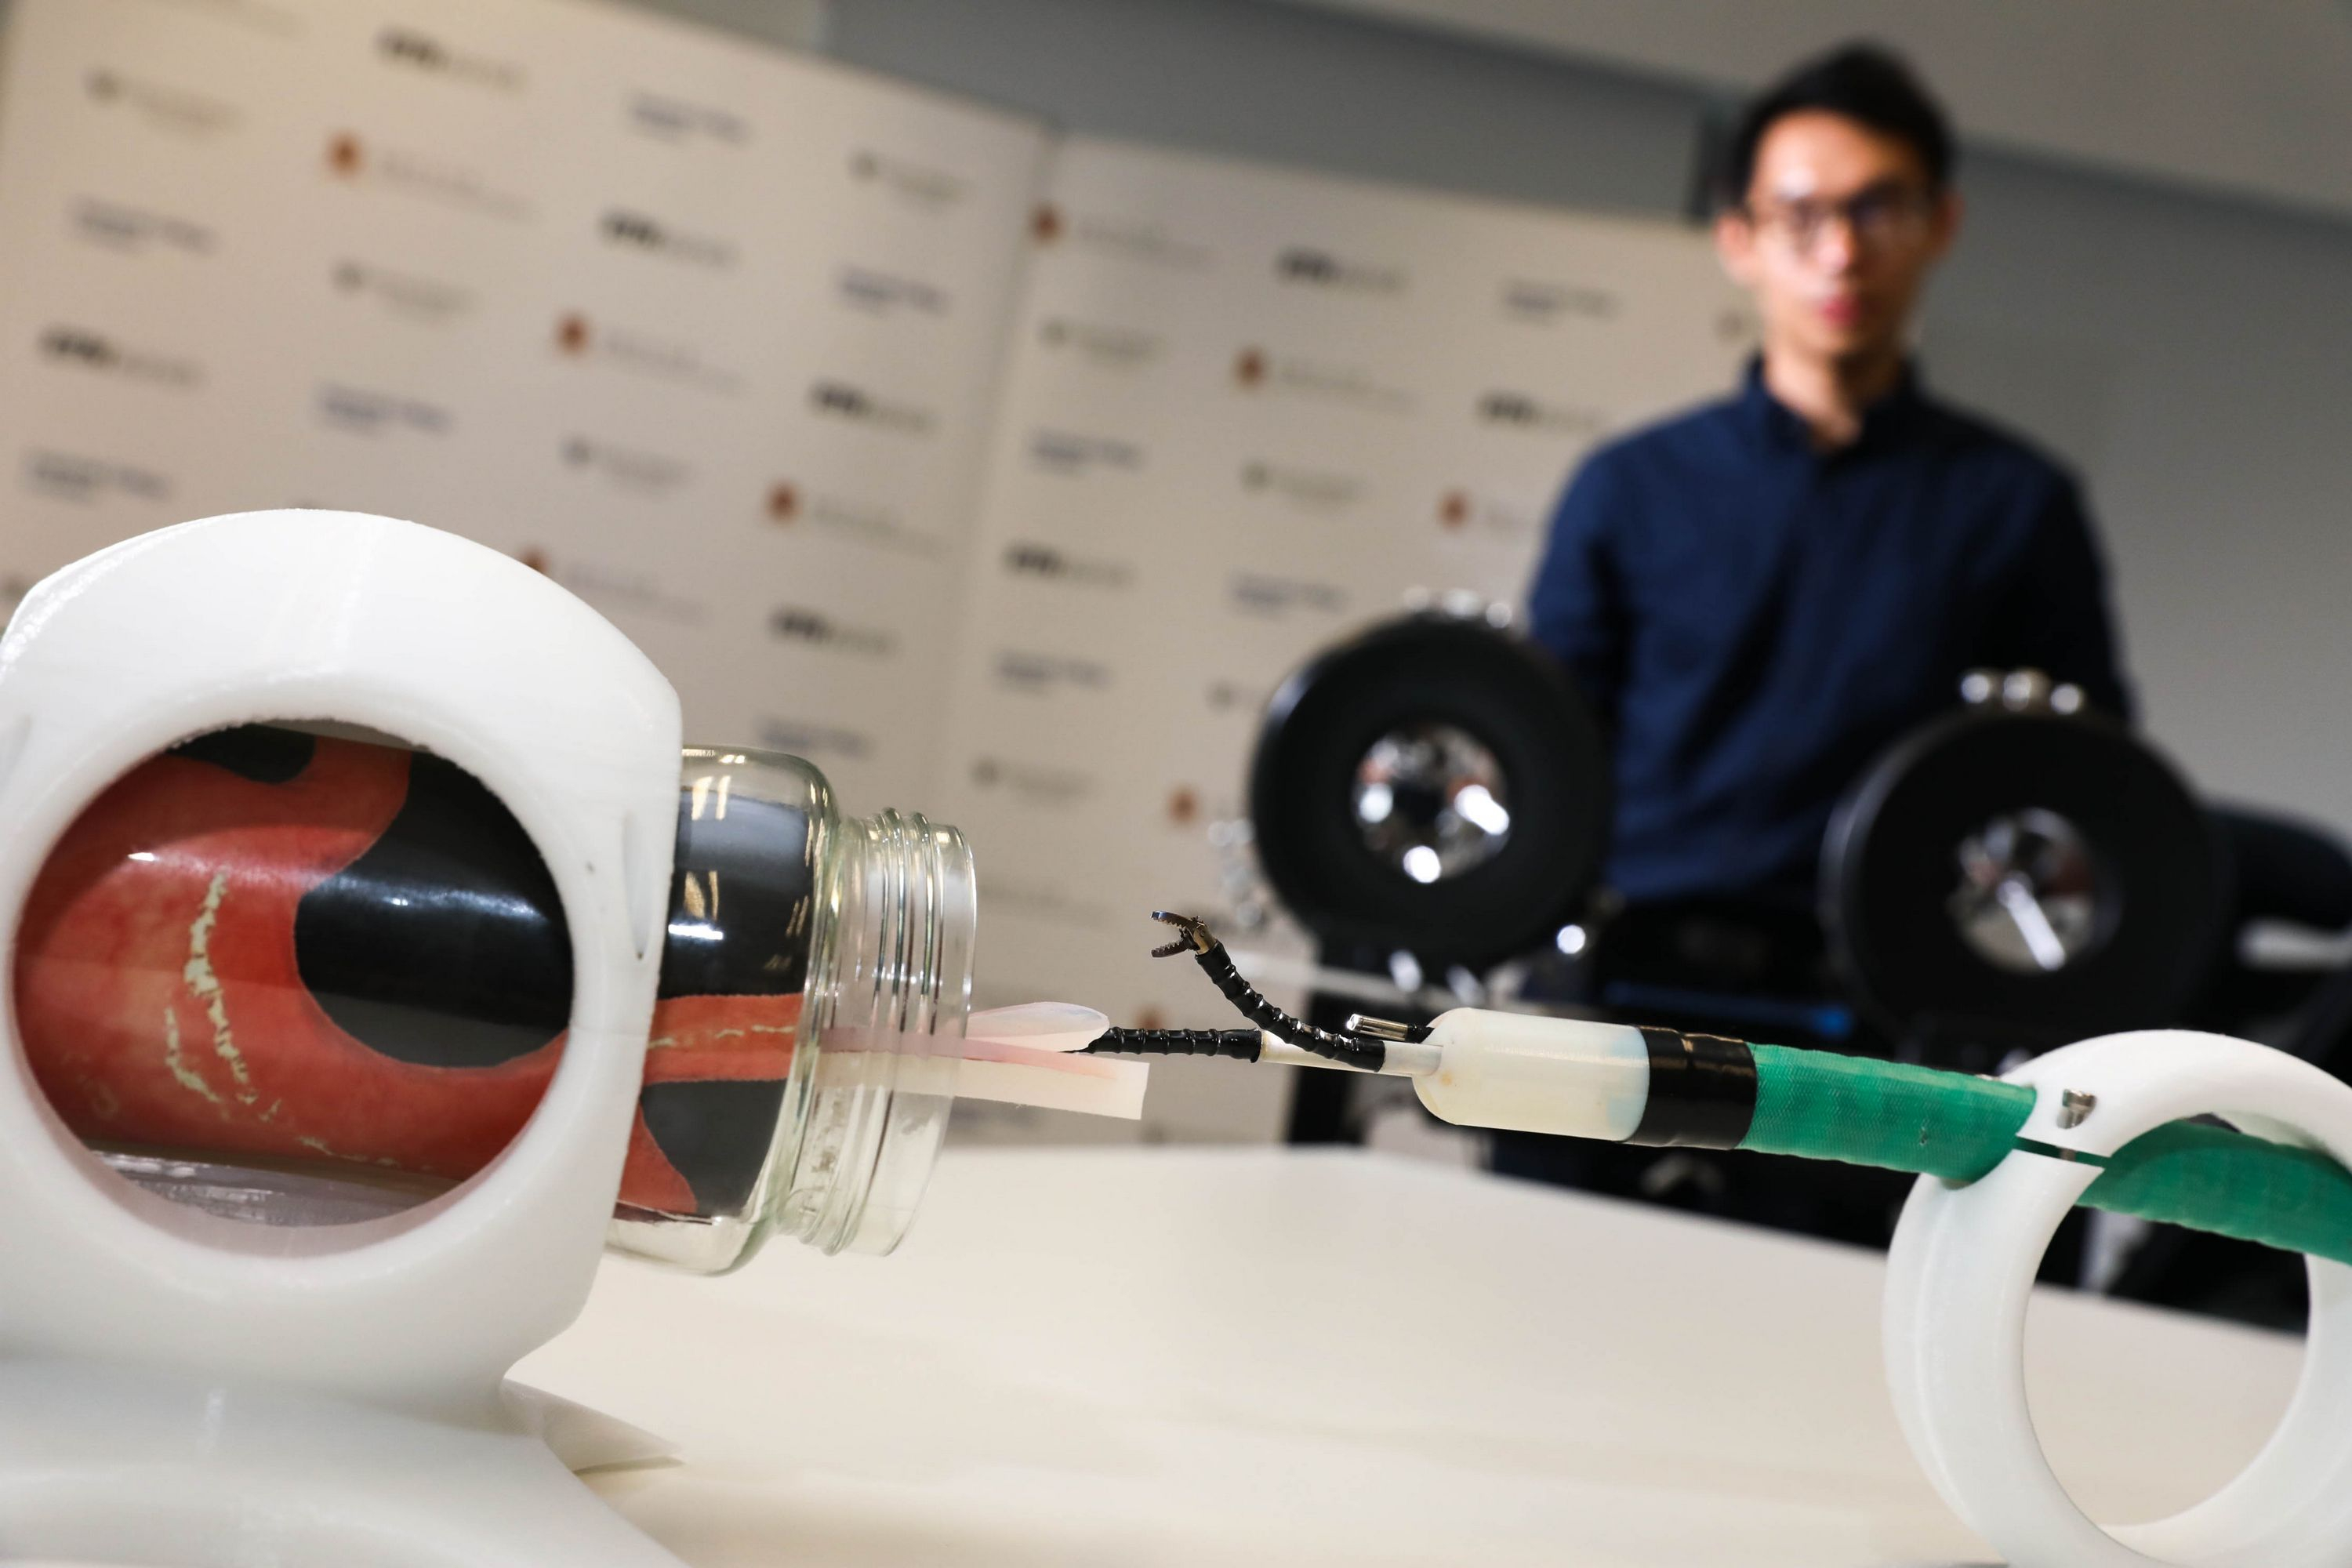 """CUHK partners with Imperial College London to develop the """"Robotic Endoscopic Platform for Performance of Advanced Endoluminal Surgery"""", which consists of two robotic arms, and is proved to be able to perform gastric endoscopic submucosal dissection in preclinical study."""